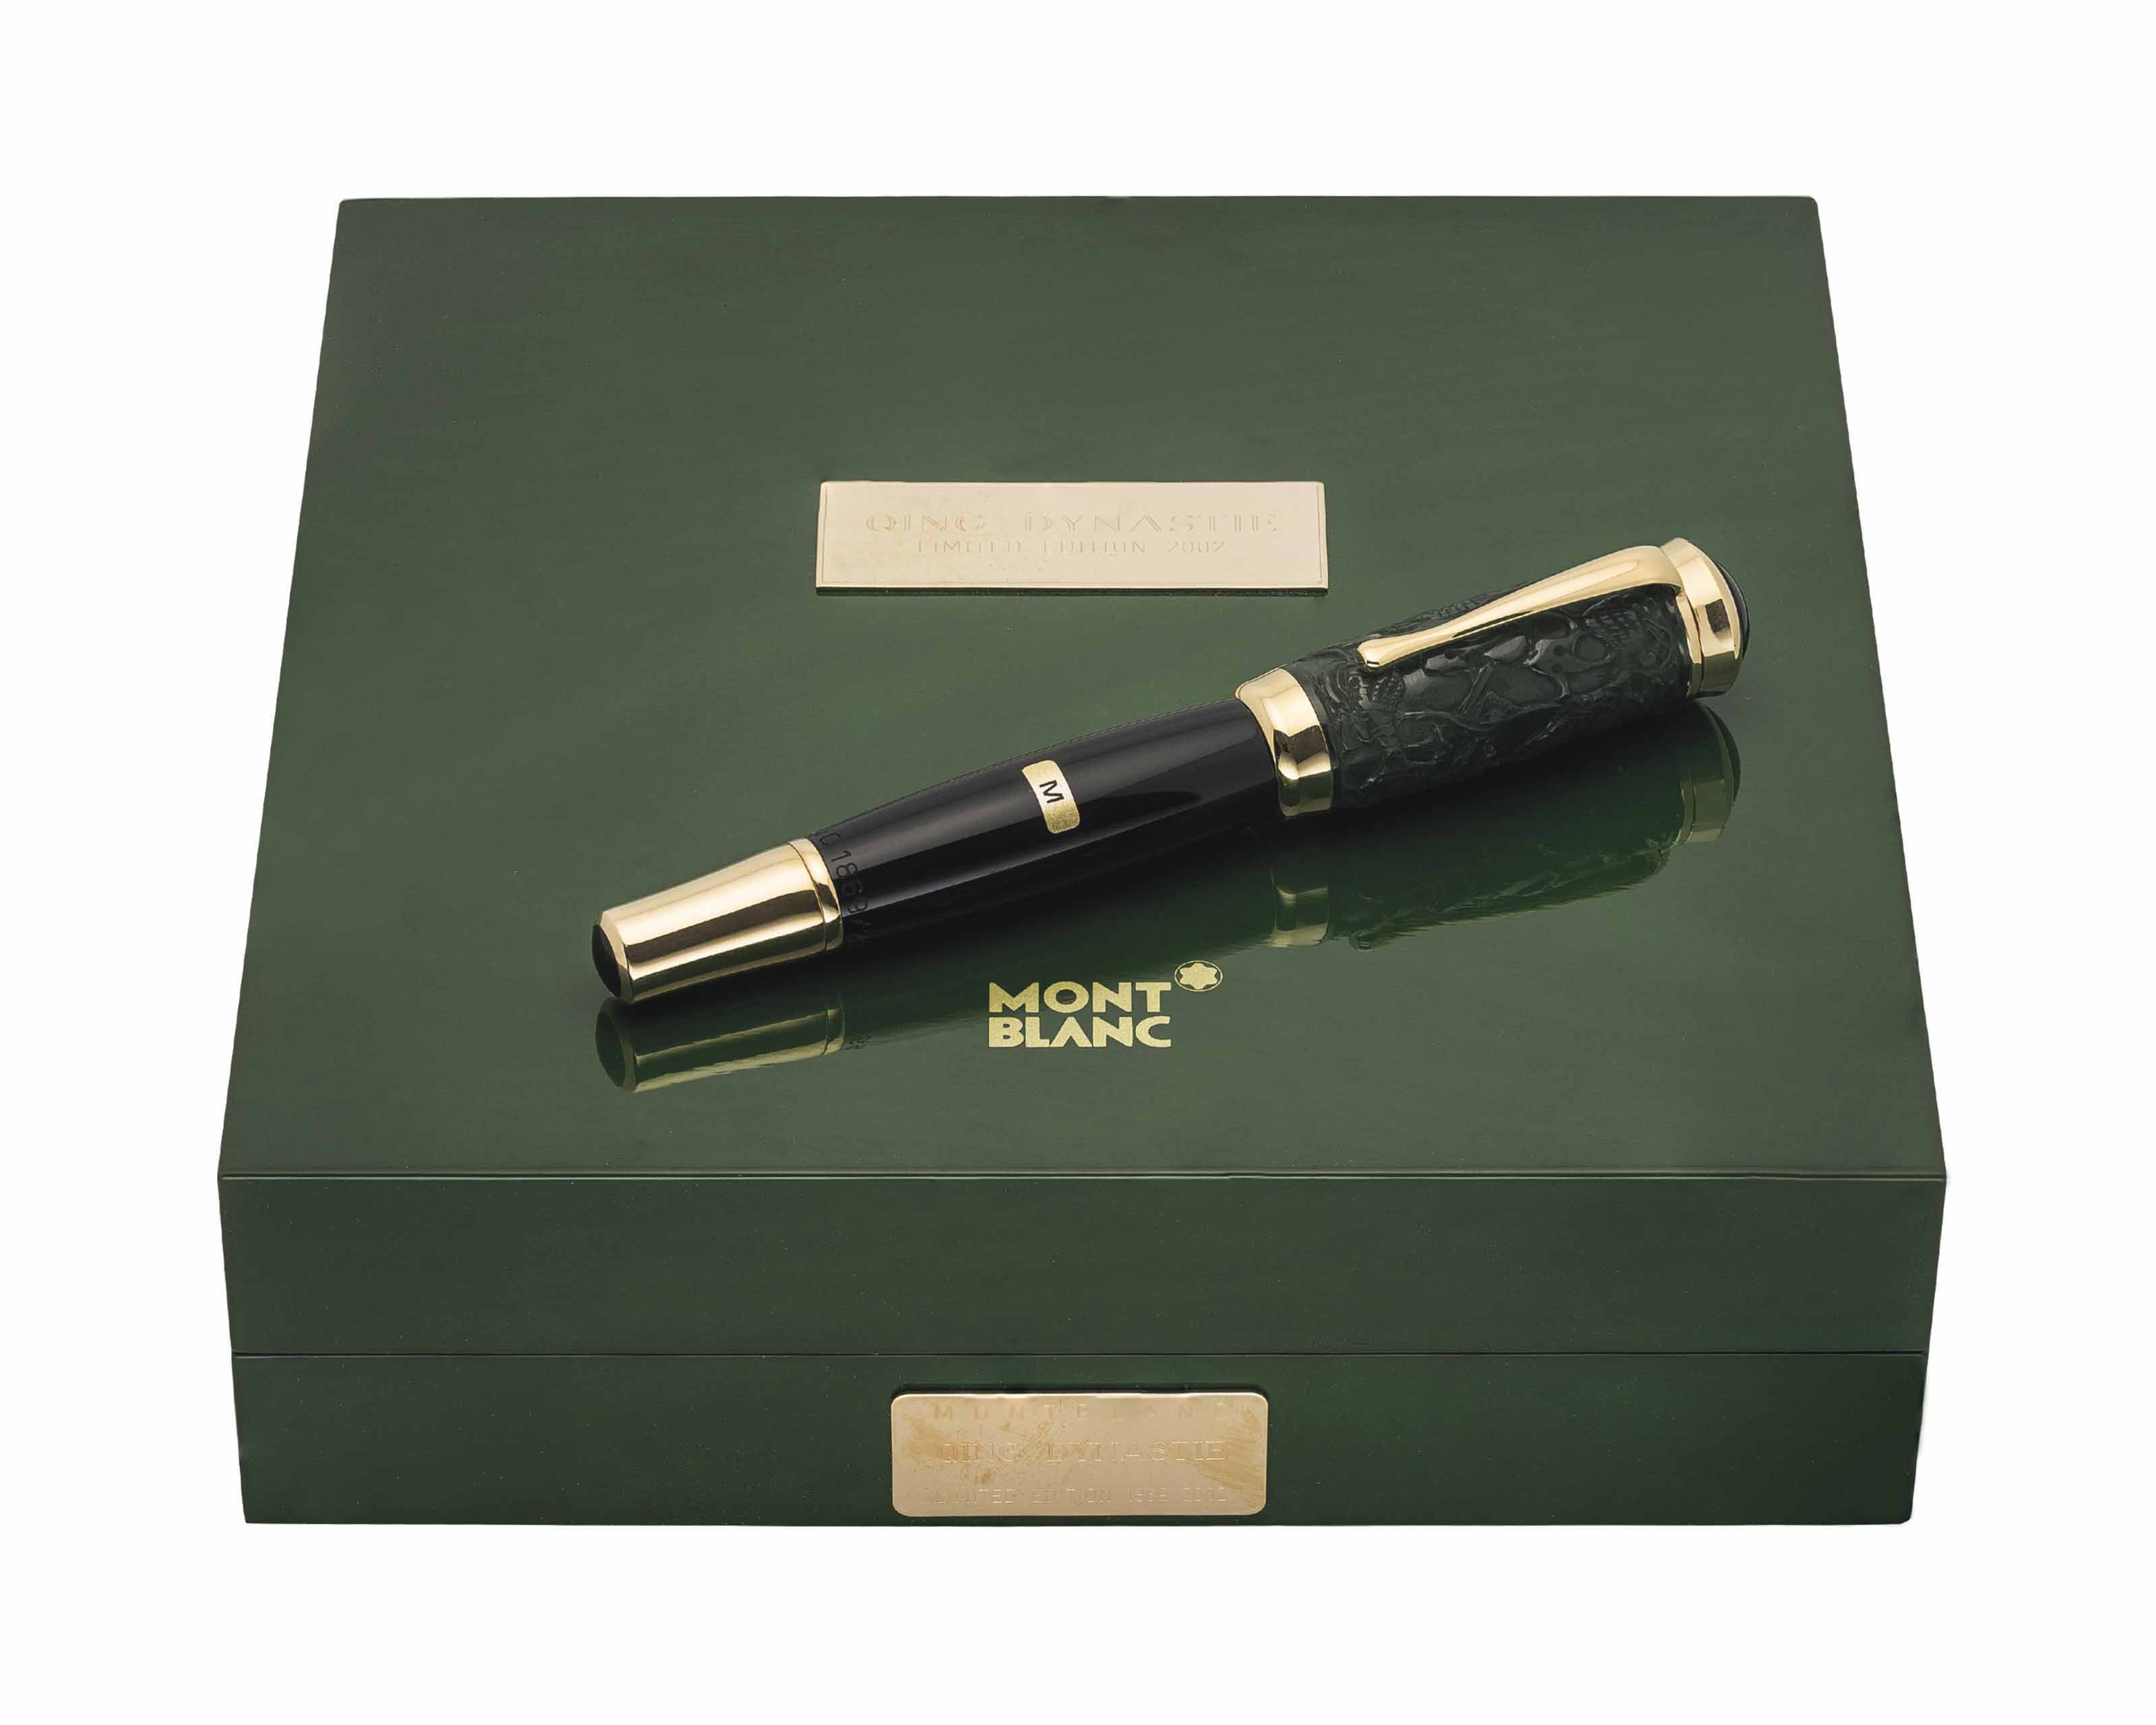 MONTBLANC. A JADE LIMITED EDITION FOUTAIN PEN WITH ORIGINAL PRESENTATION BOX